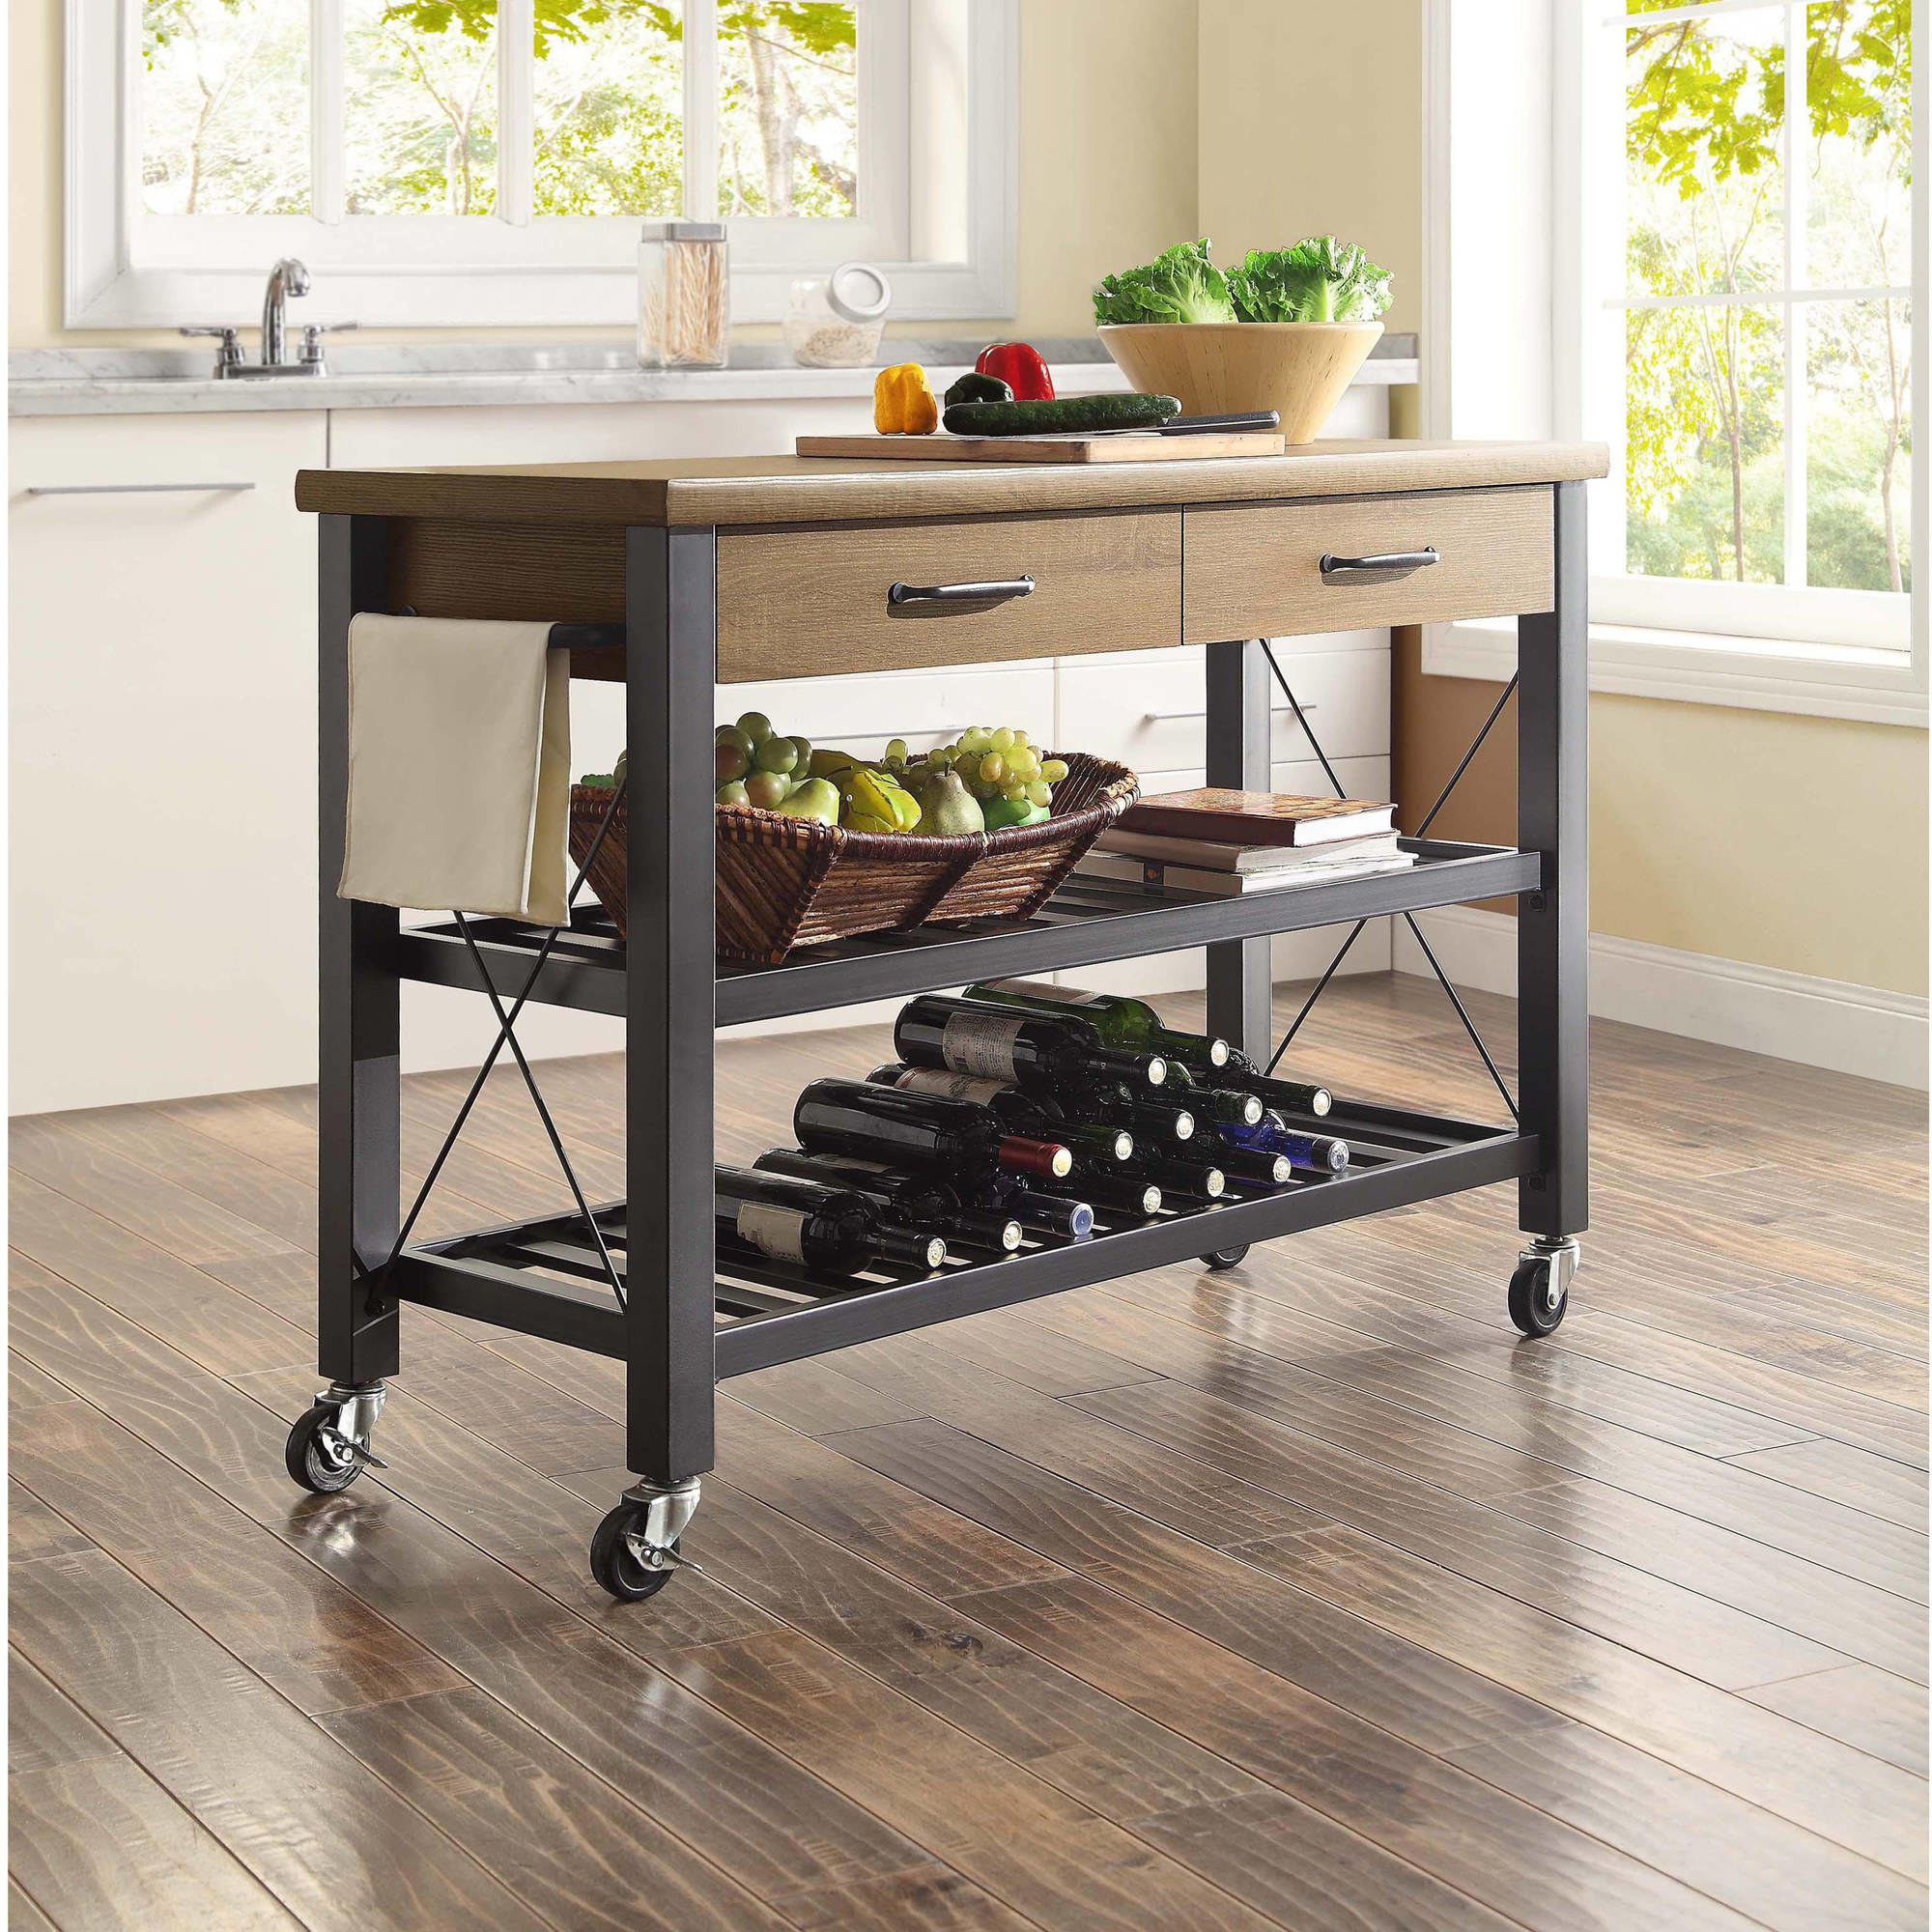 kitchen island cart with caster wheels, wooden top, and 2 drawers